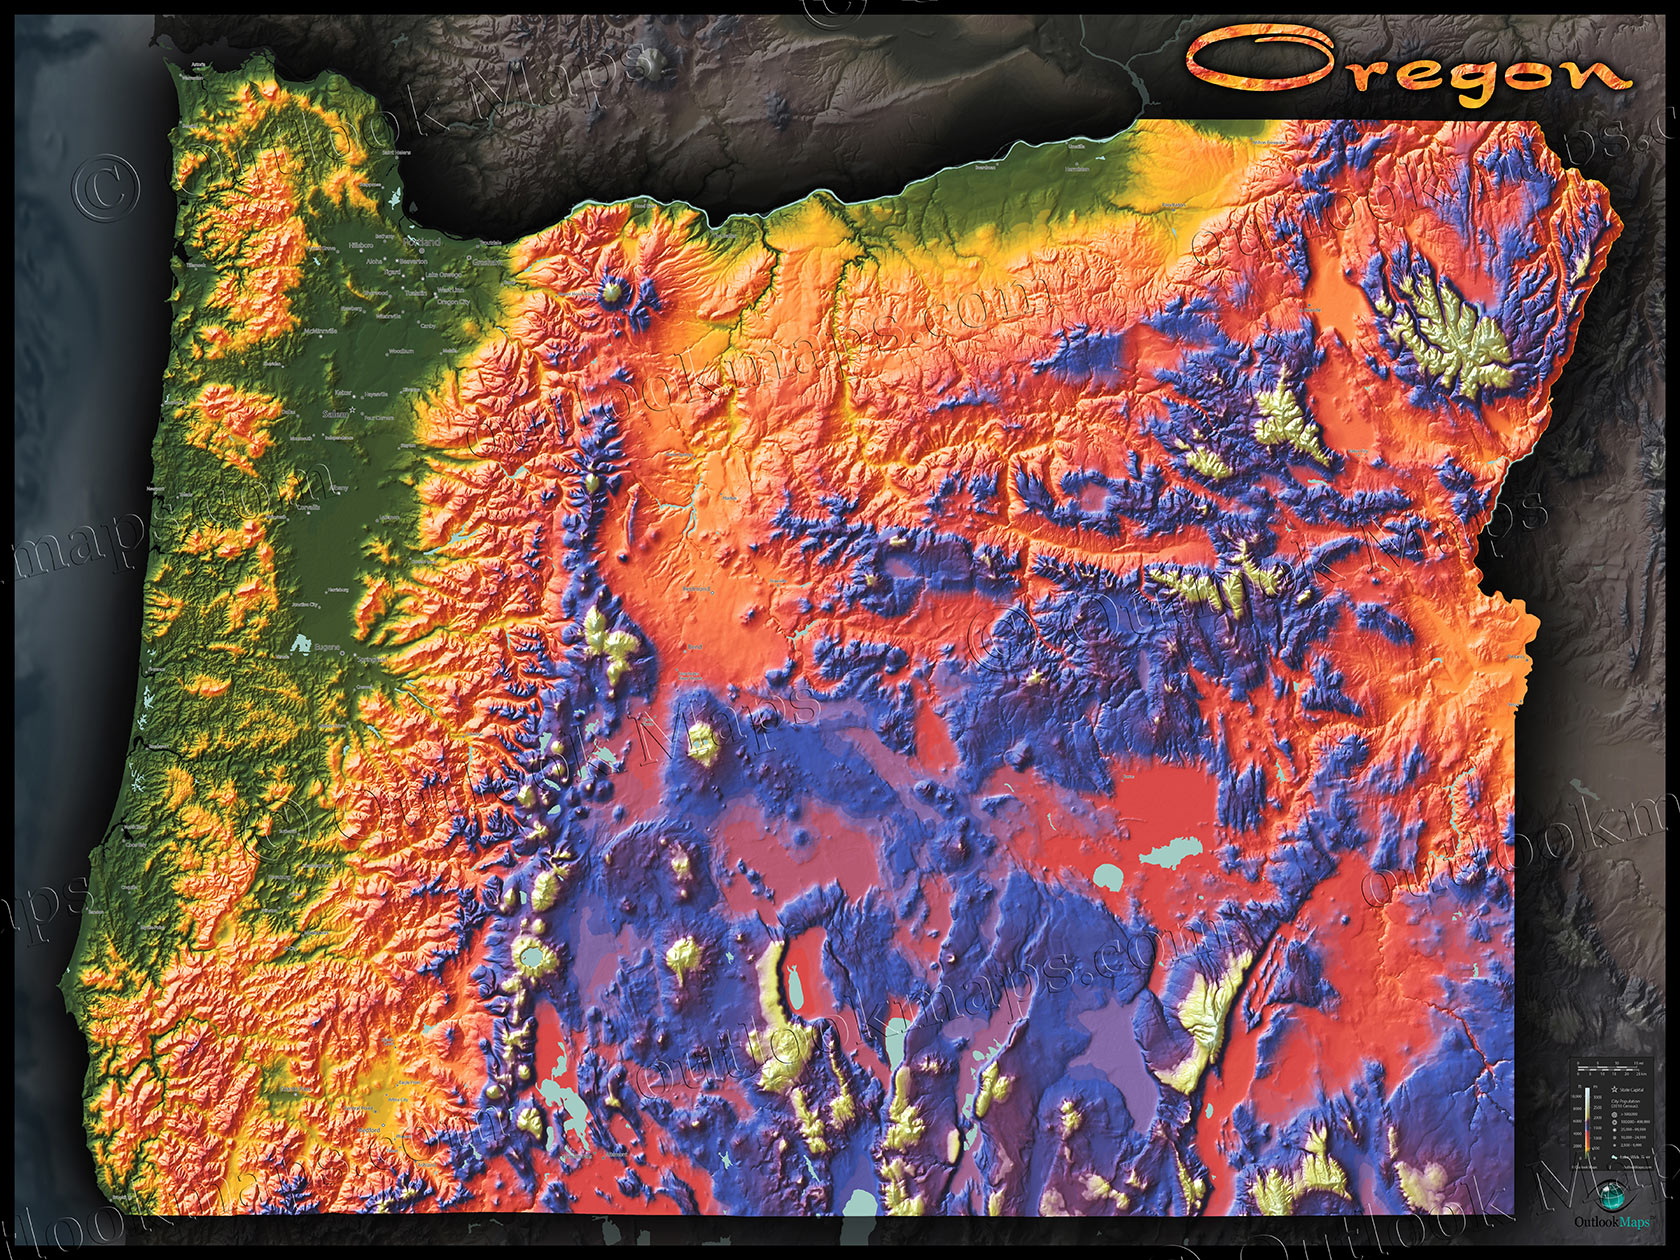 Oregon Topographic Map Oregon Topography Map | Physical Features & Mountain Colors Oregon Topographic Map